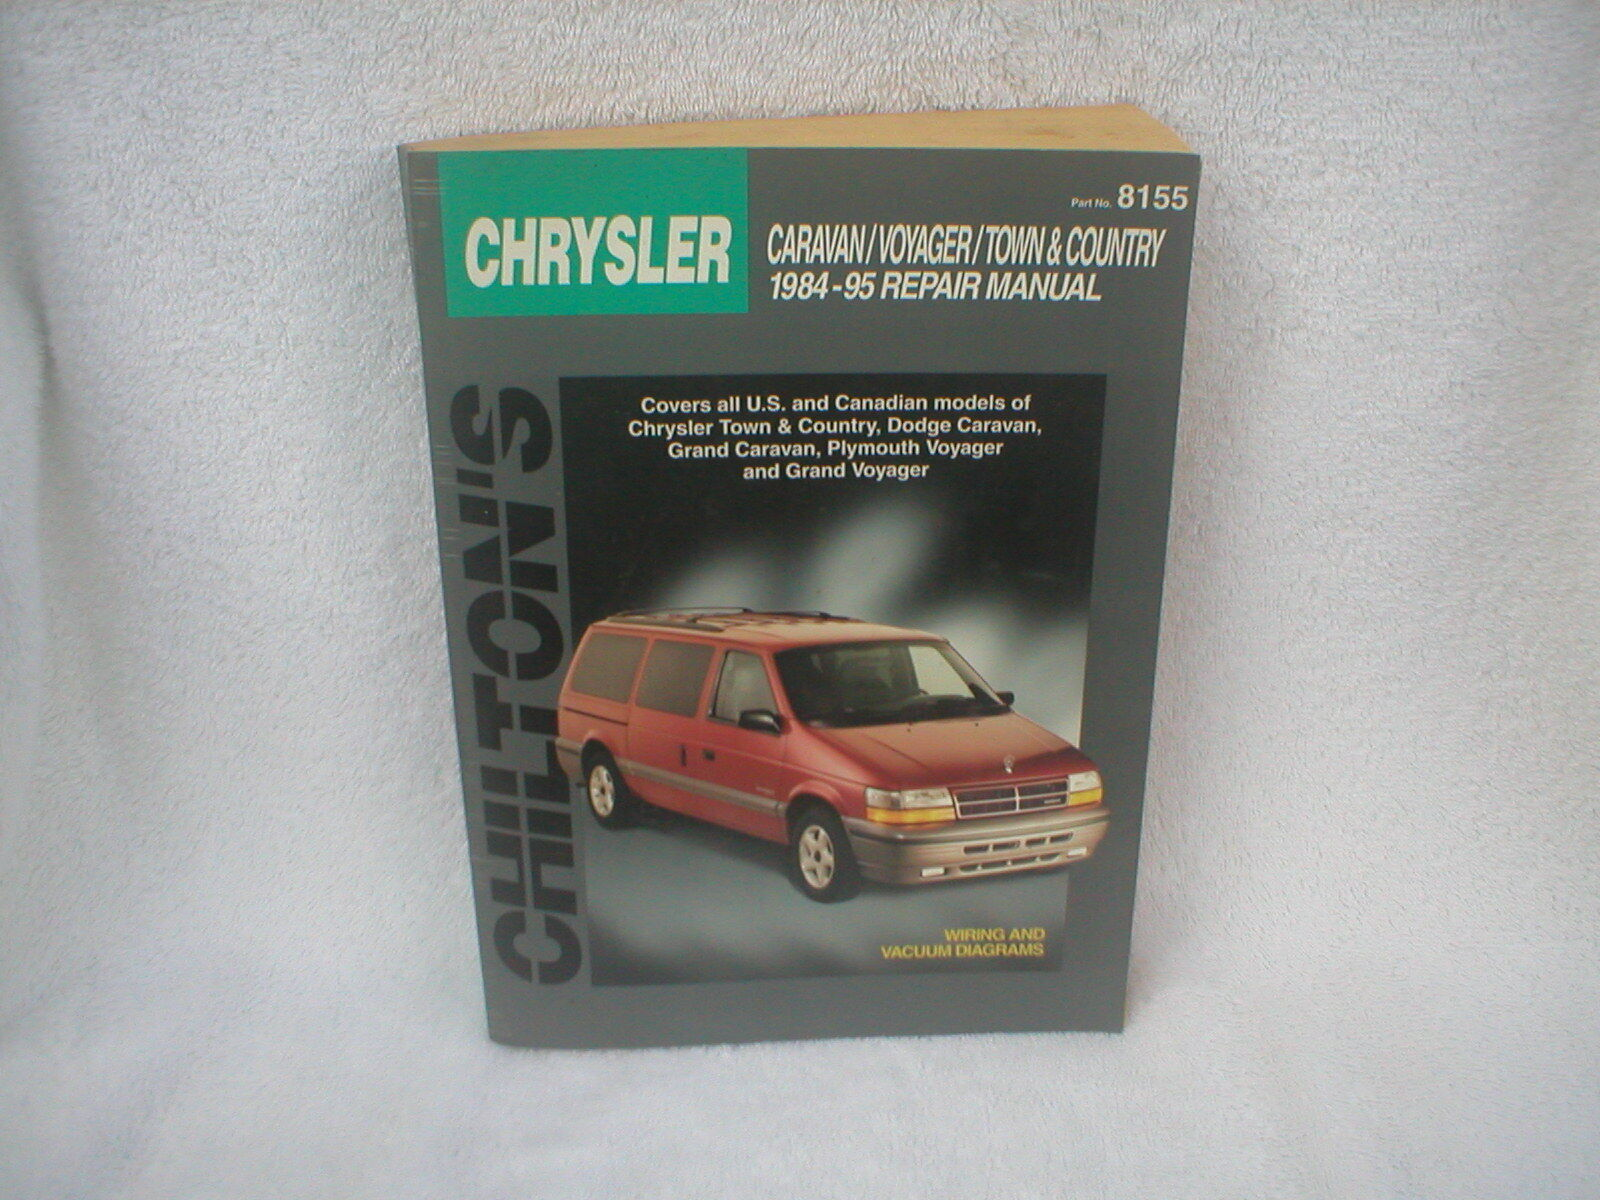 Chrysler Caravan / Voyager / Town & Country Repair Manual - 1984 -1995  Chilton's 1 of 1Only 1 available ...